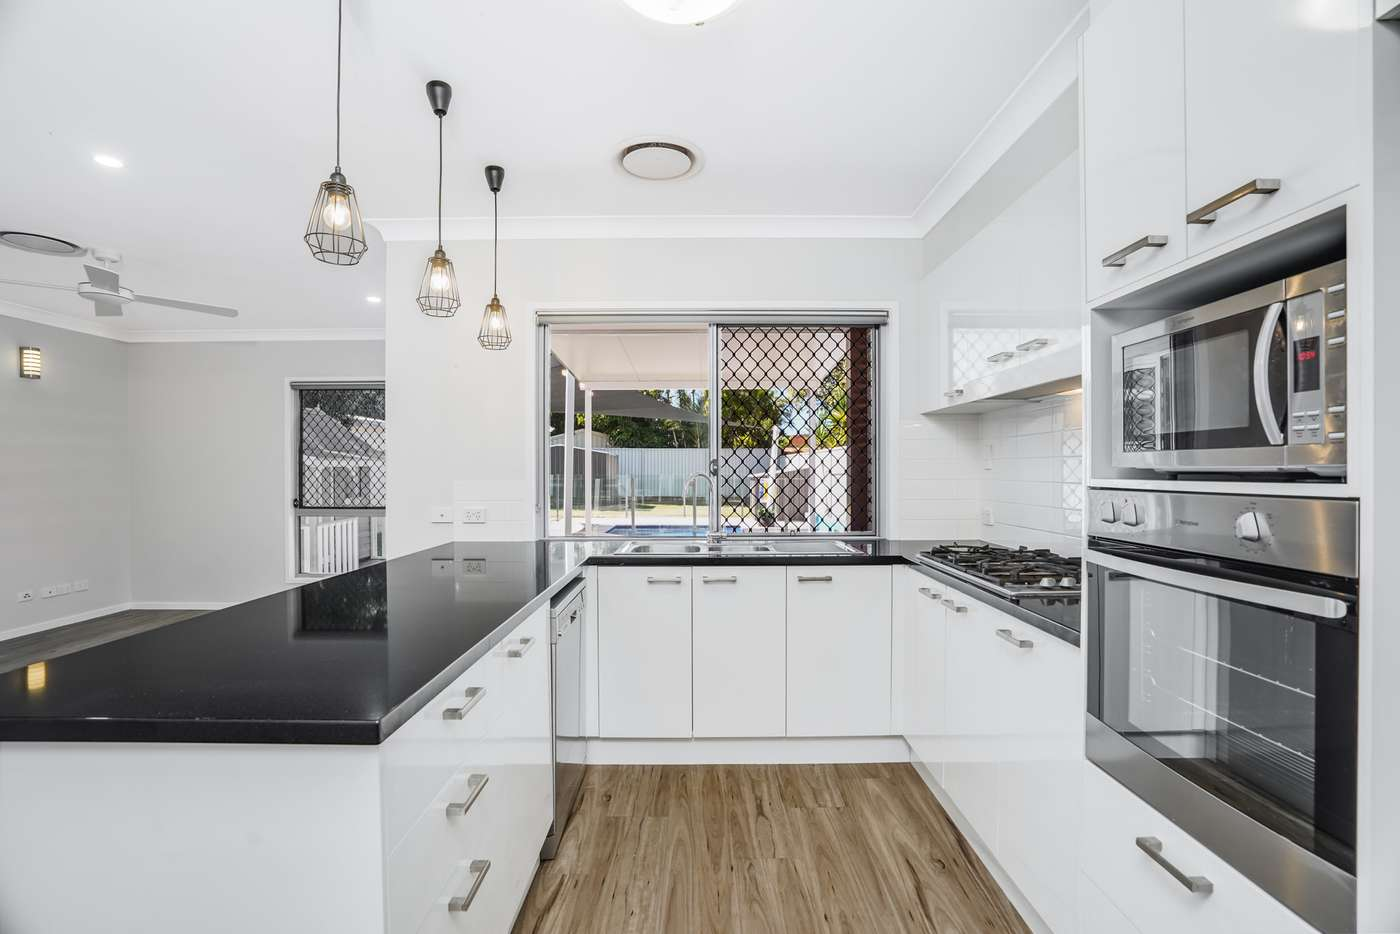 Sixth view of Homely house listing, 36 DONALD STREET, Woody Point QLD 4019